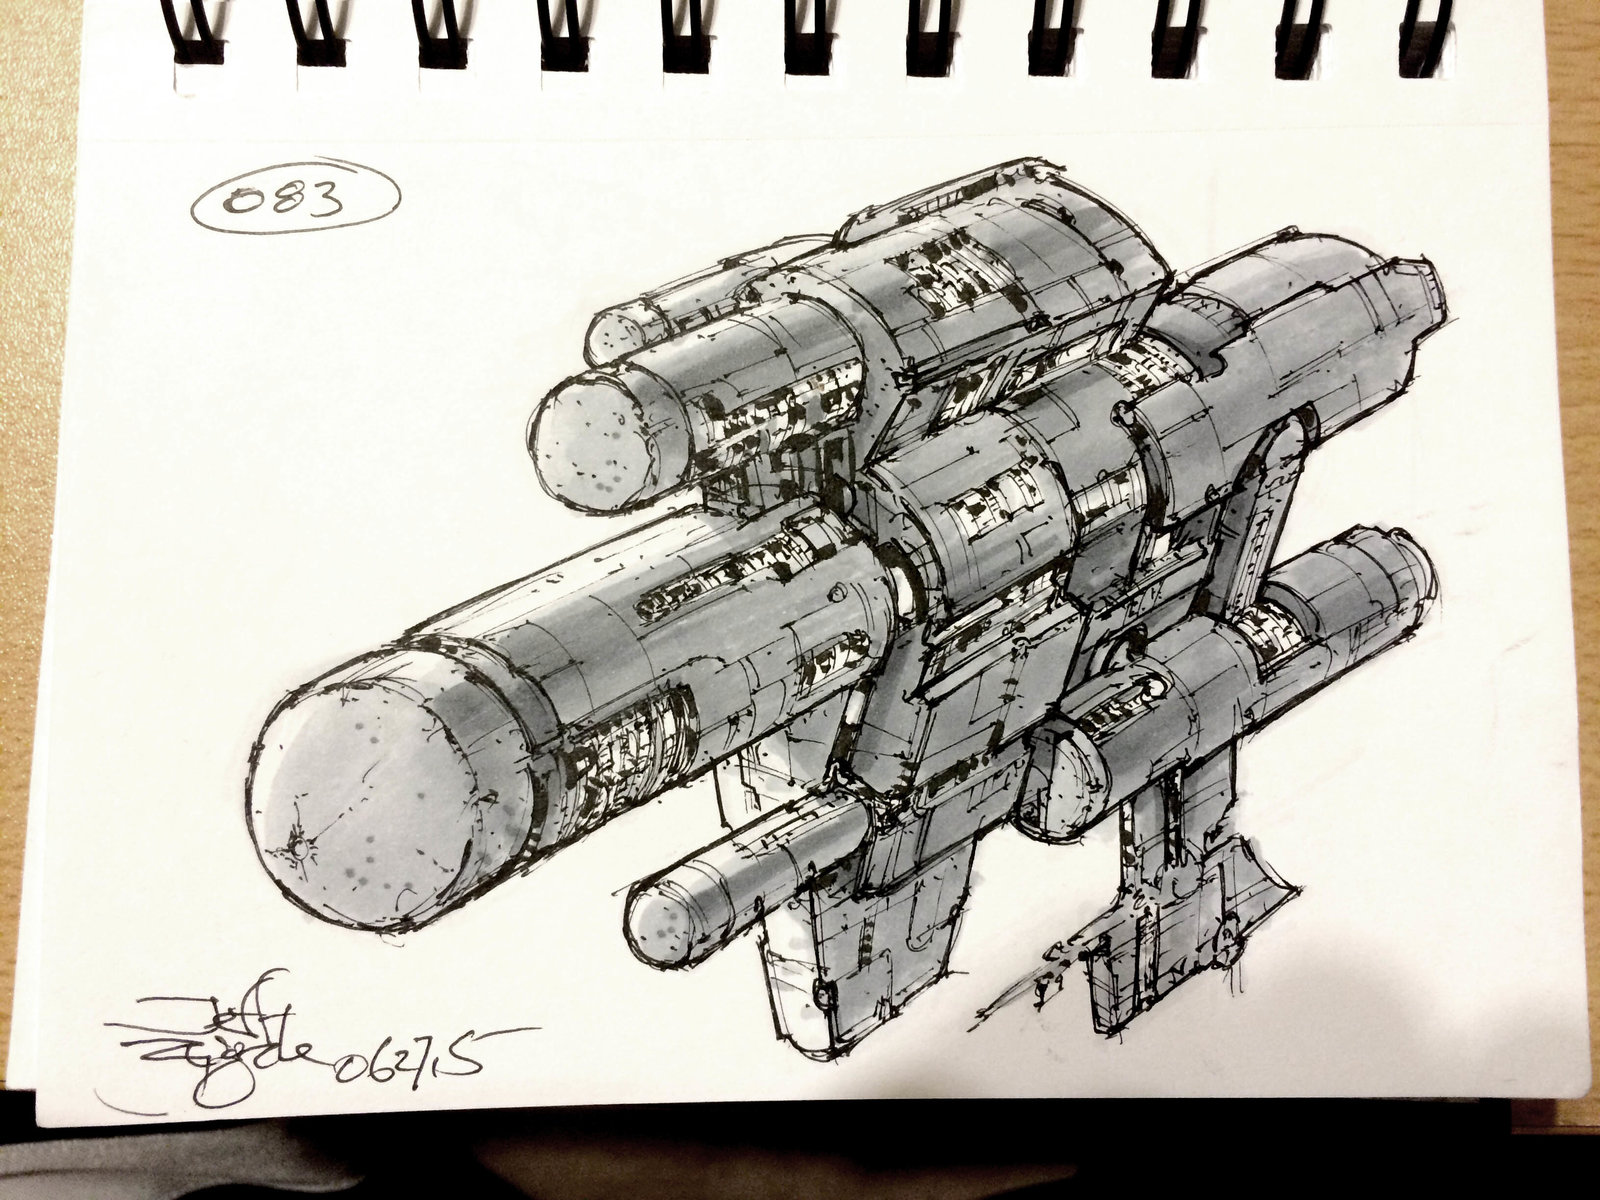 SpaceshipADay 083